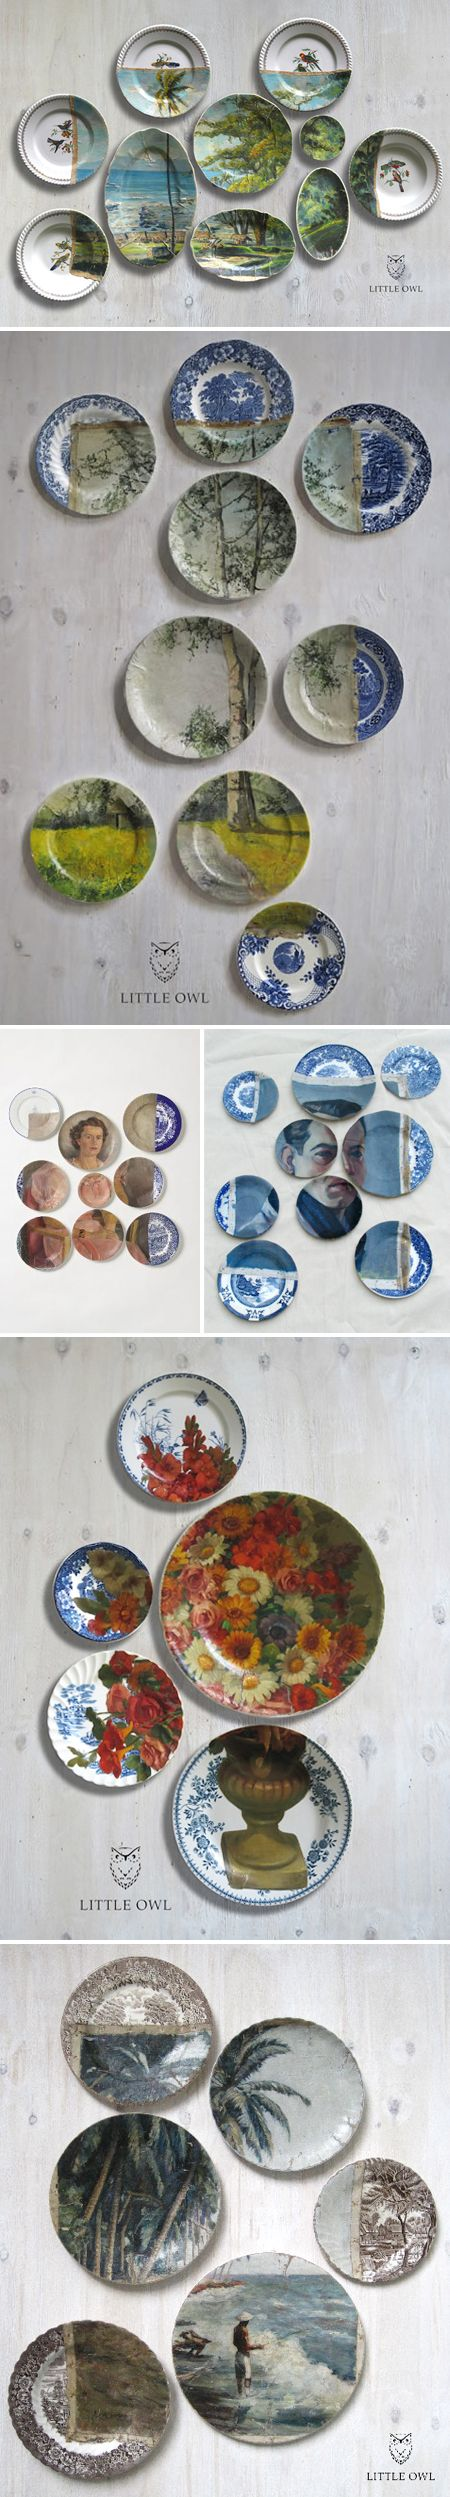 """'Altered Perspectives, by Little Owl Design – aka Bruce Wayland and Marcello de Simone. They are collaborating artists from the Netherlands with """"interests are in Art History, Fine Arts, Fashion, Design, Culinary World, Horticulture Travel.""""'"""